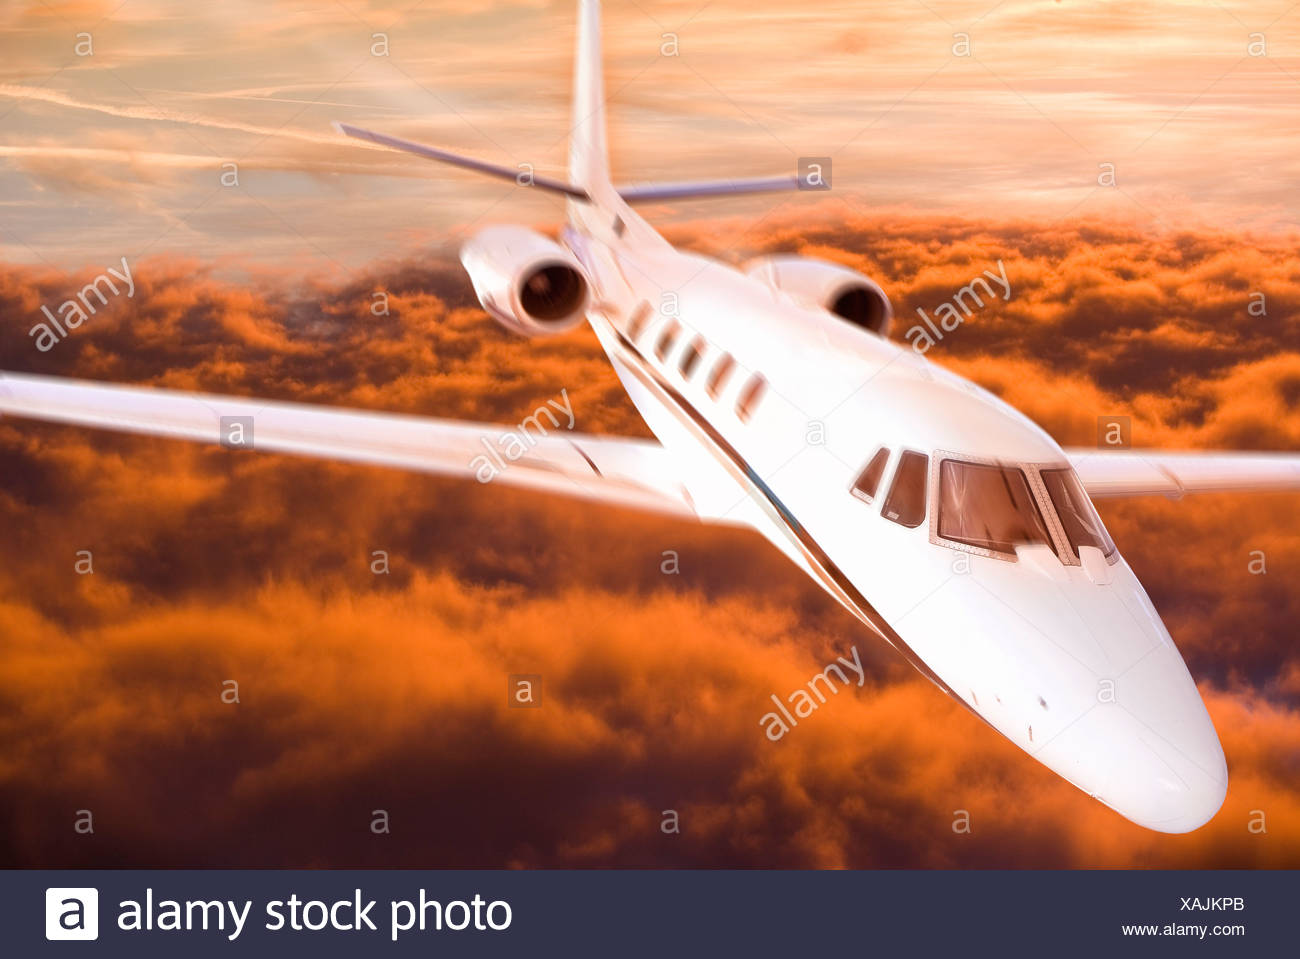 Airplane flying over orange clouds - Stock Image